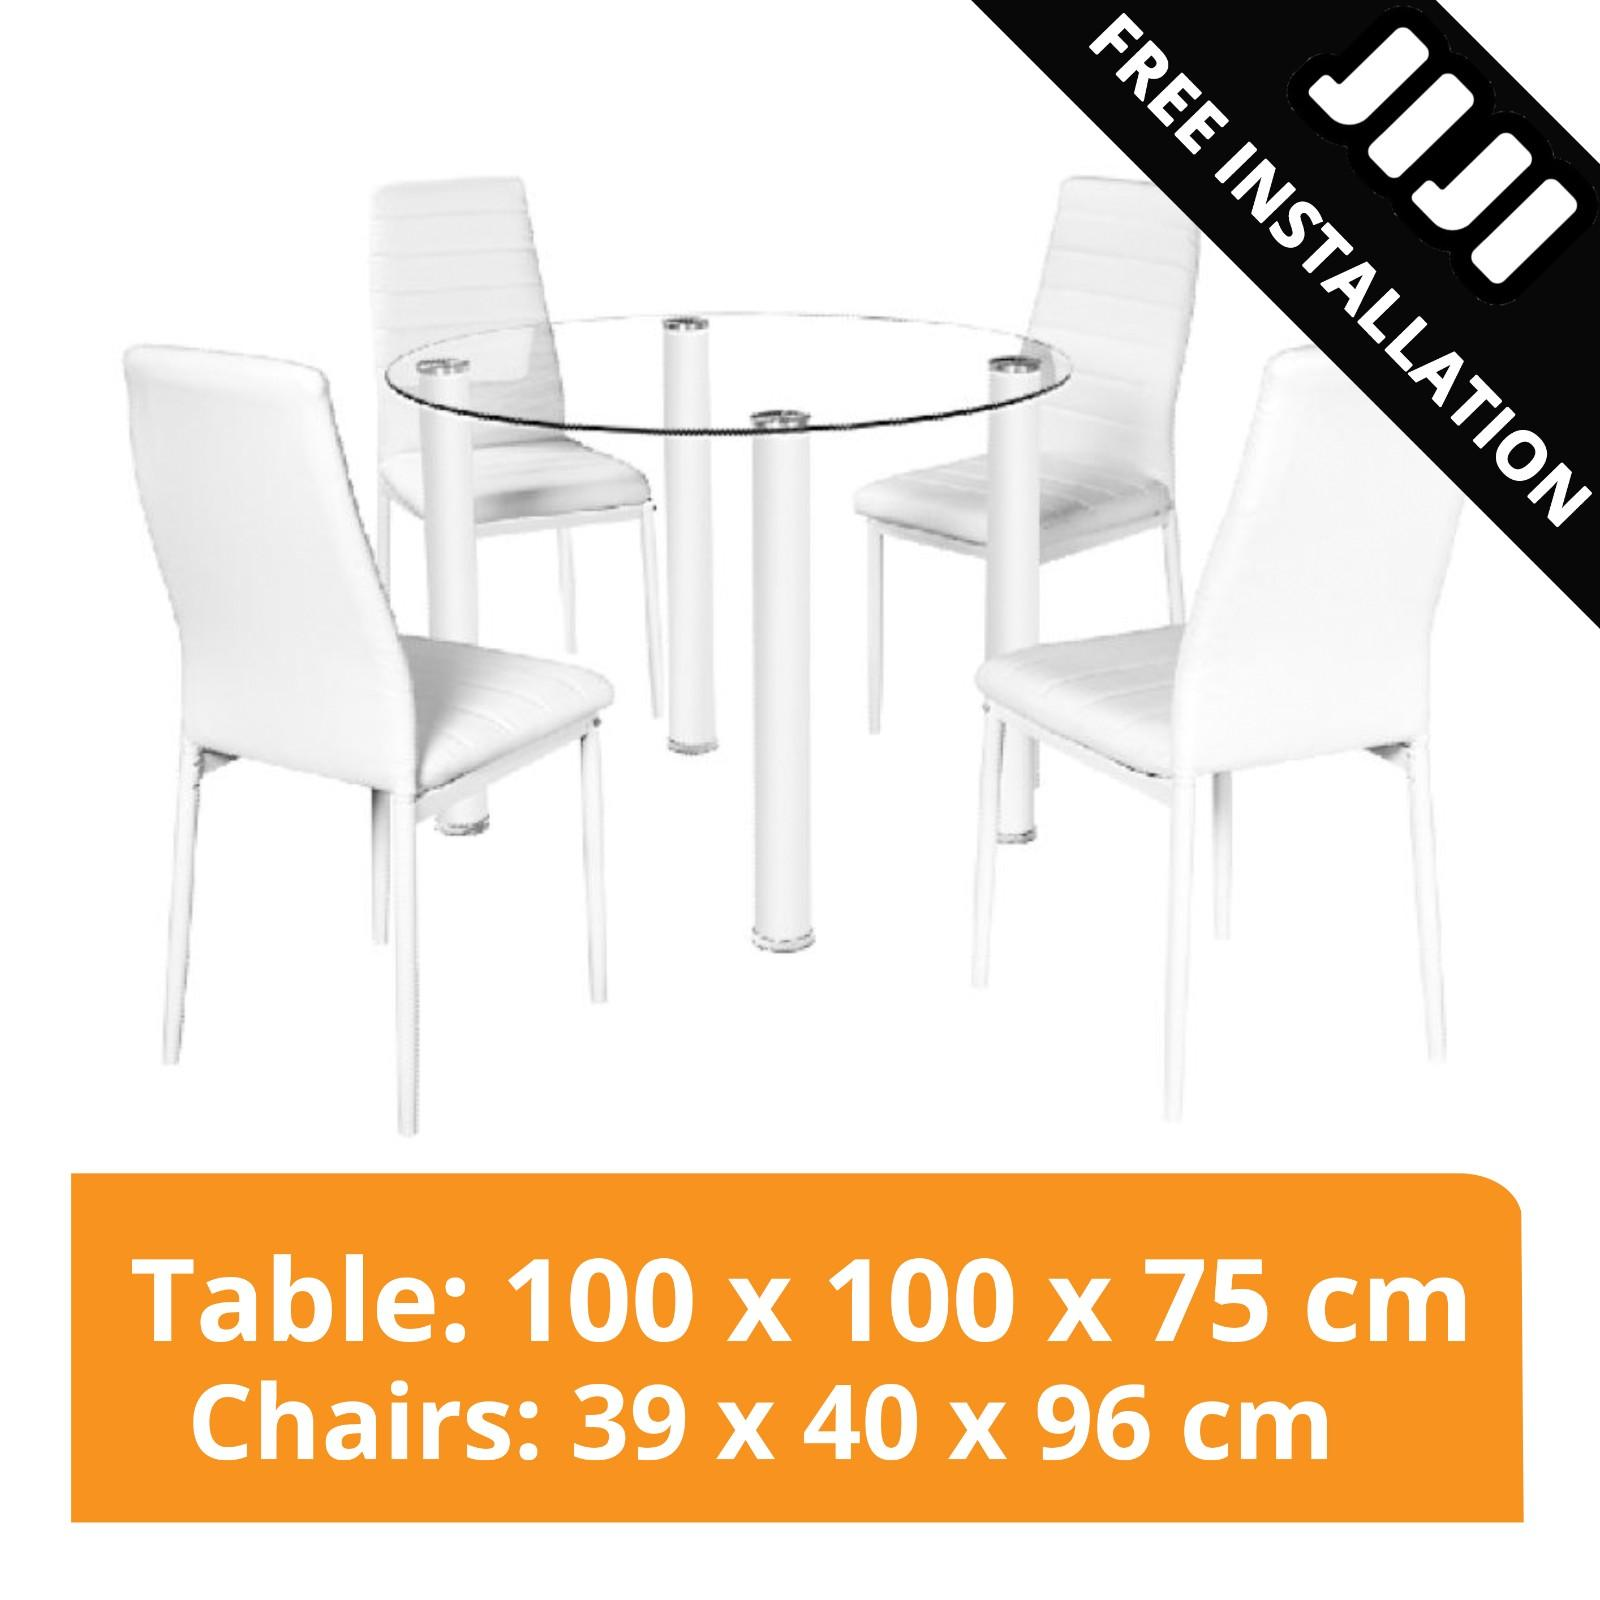 Jiji Vetro Dining Table Set (1+4) (free Installation) - Tables / Package / Furniture (sg) By Jiji.